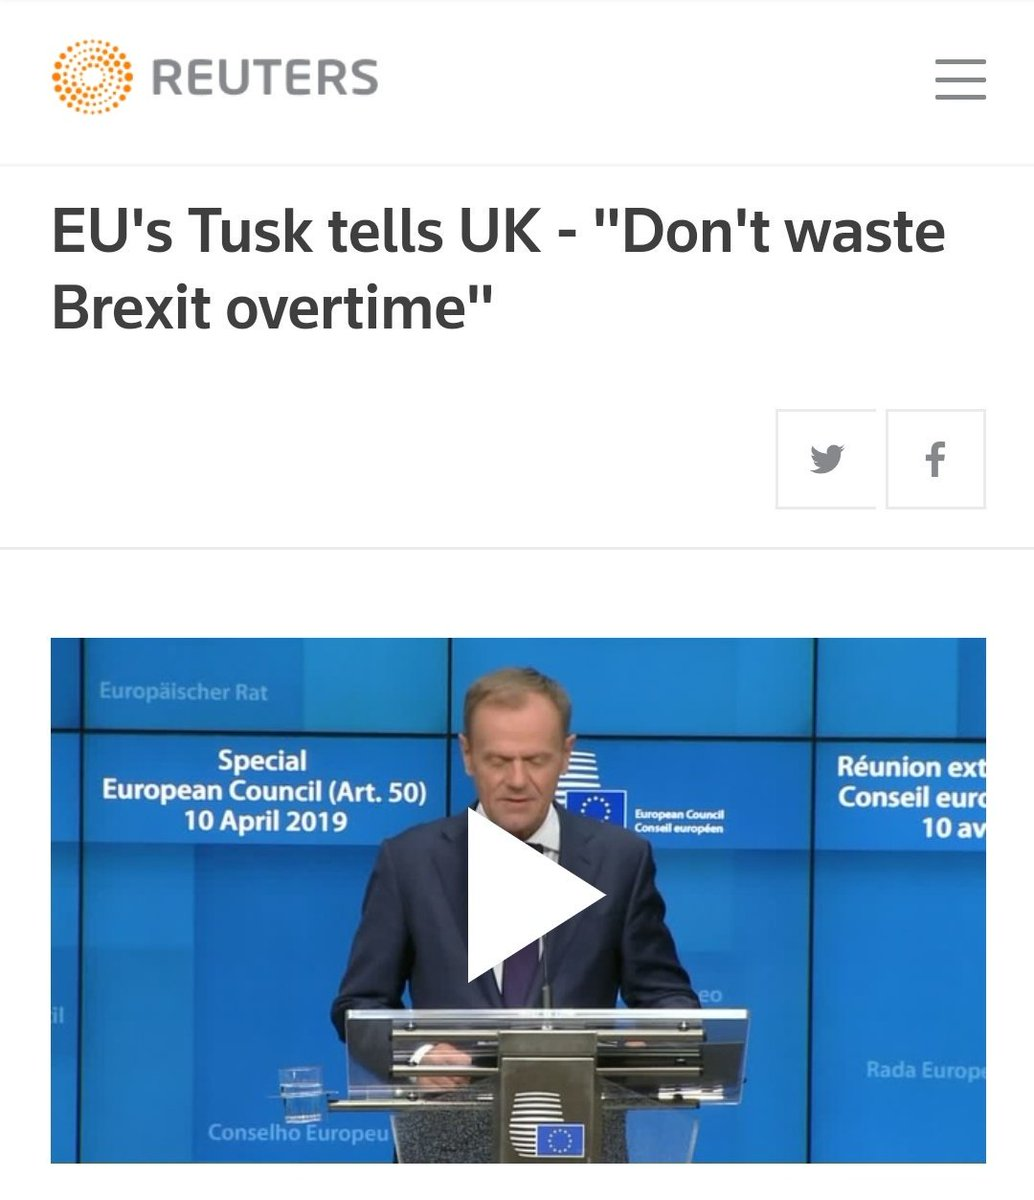 Your routine reminder that when the EU agreed to a Brexit extension, they explicitly warned against wasting time...